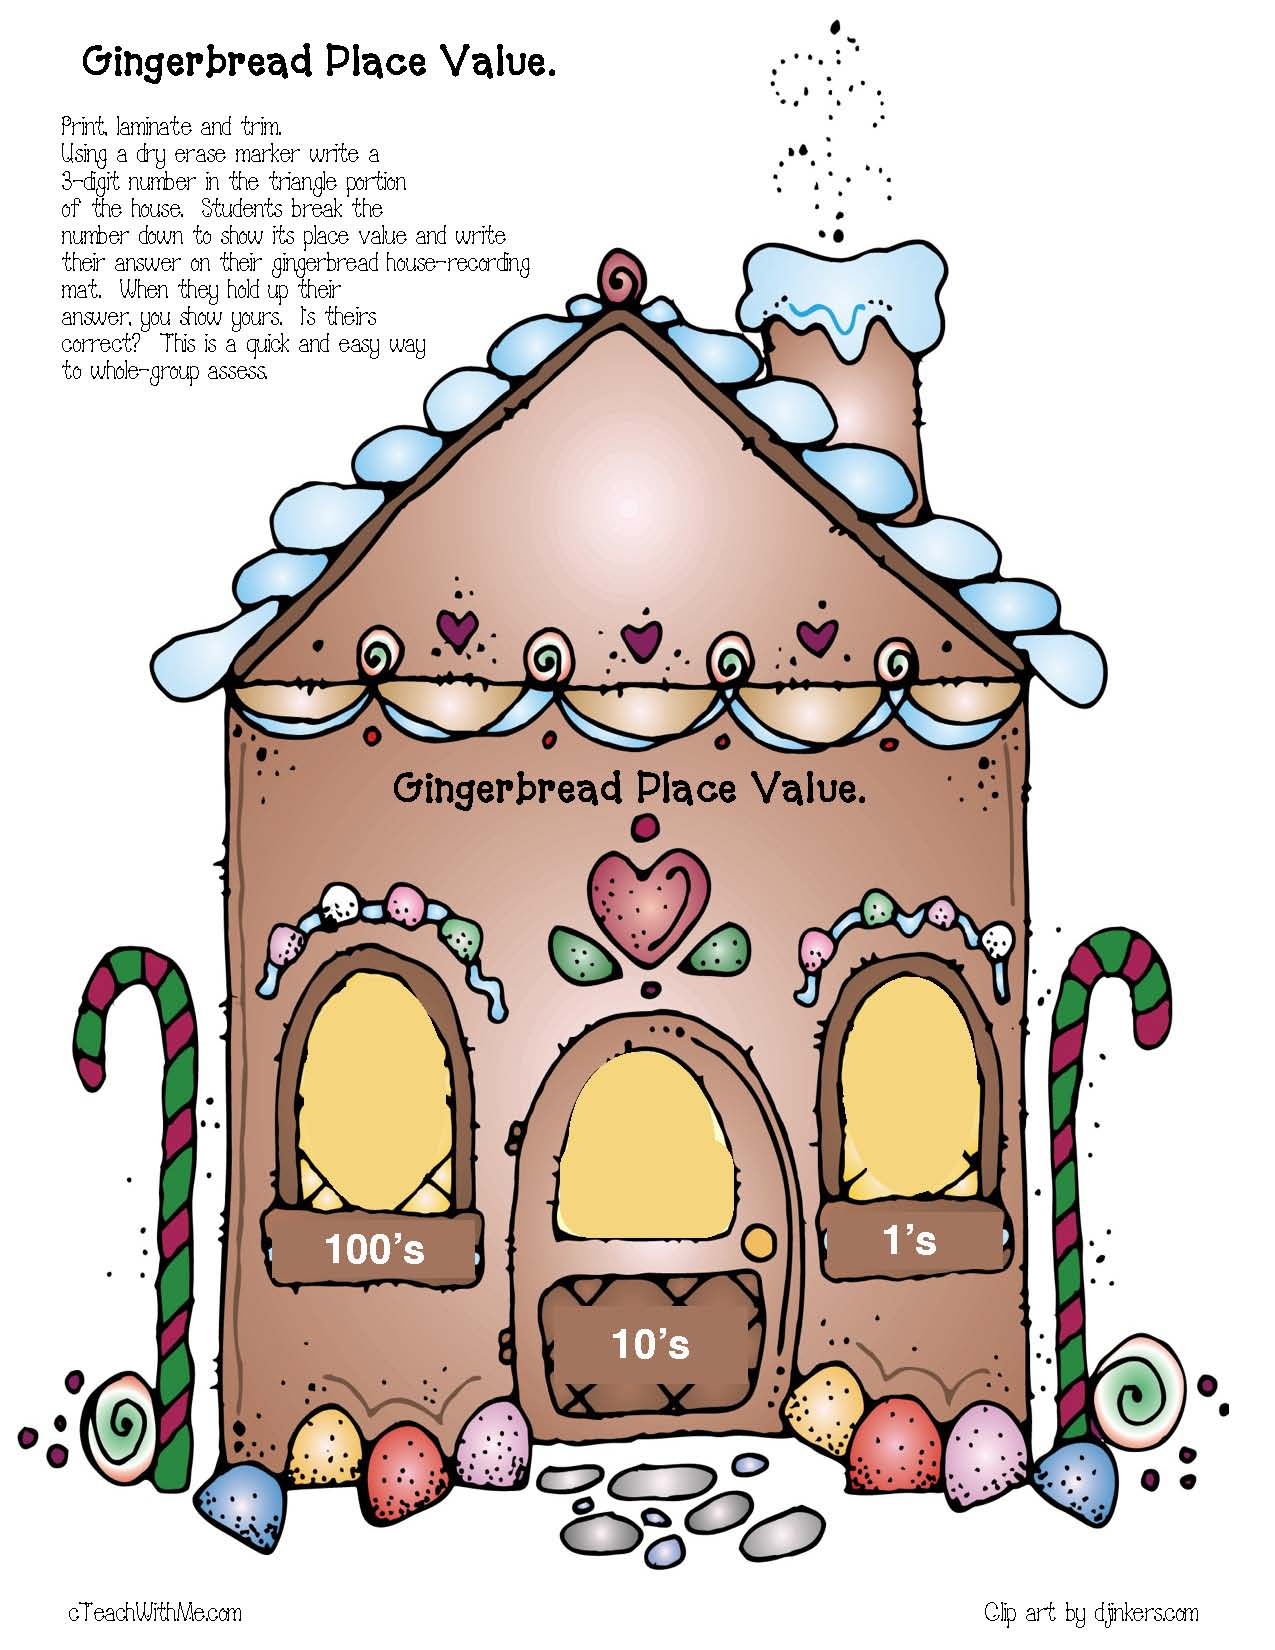 gingerbread place value mat, gingerbread activities, math games,